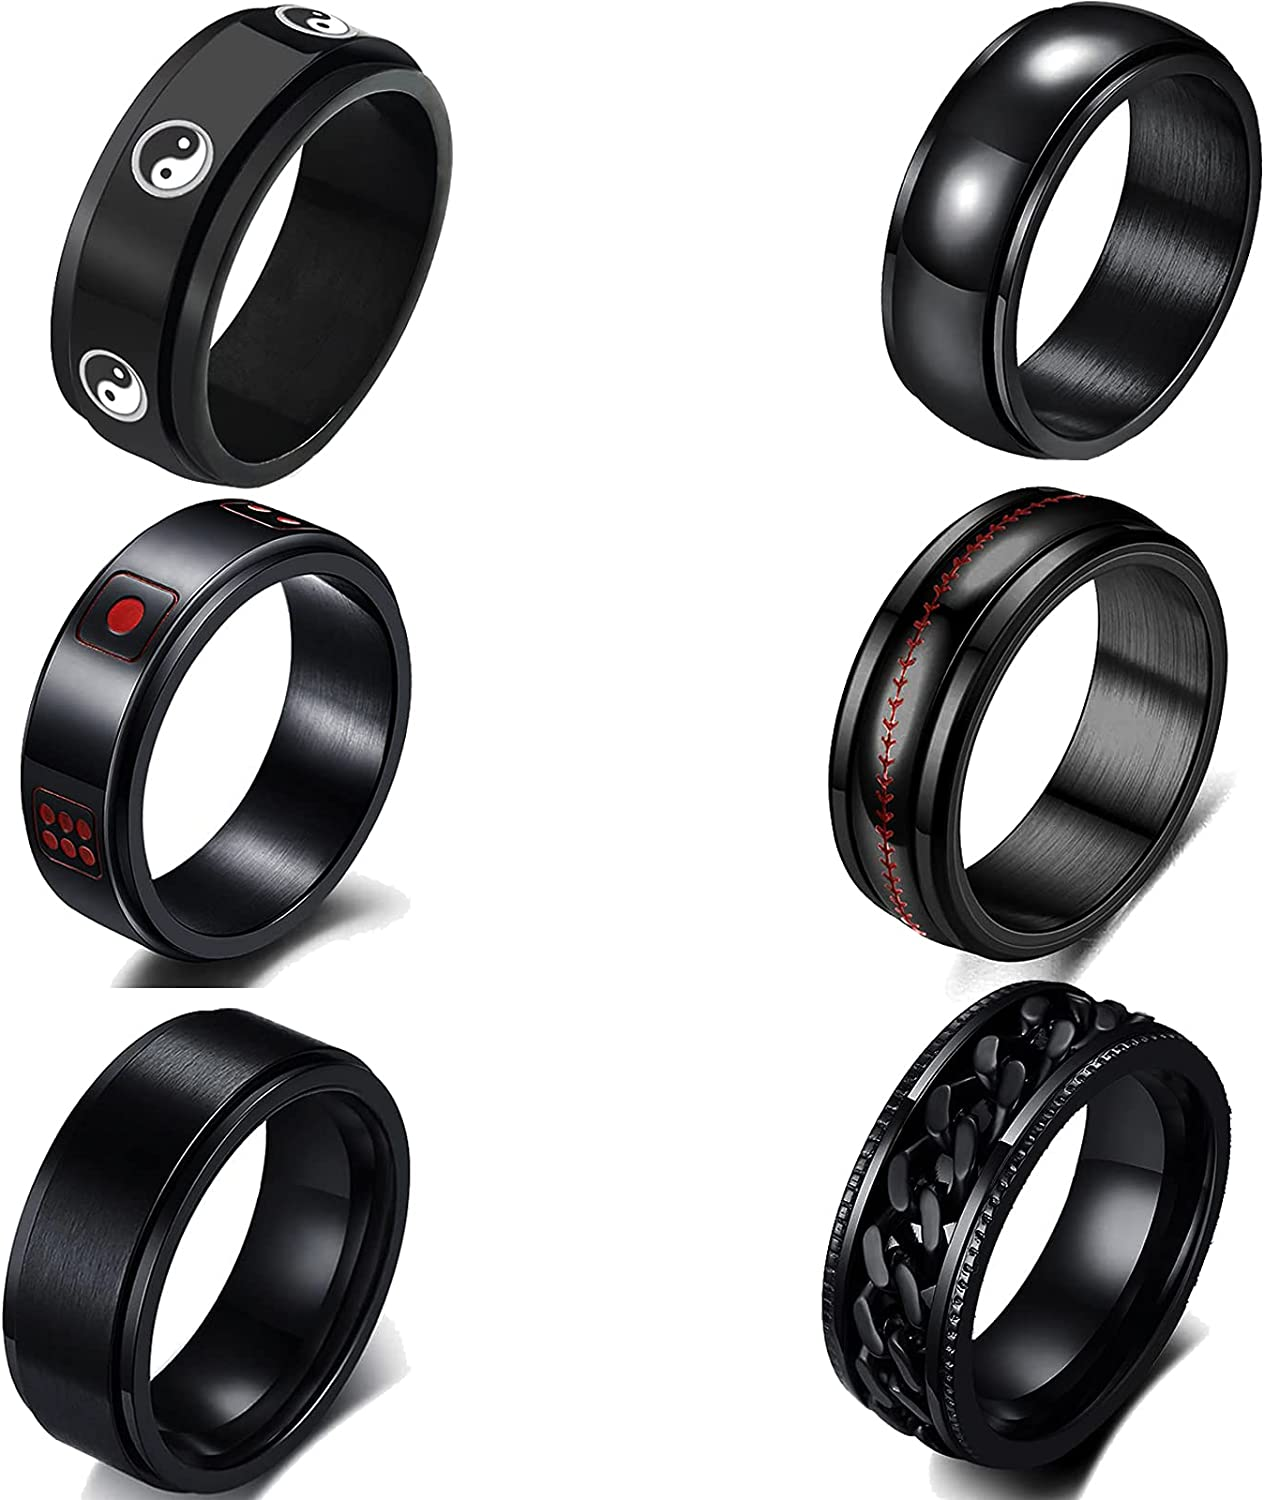 JEWPARK 6 PCS Black Fidget Spinner Band Rings for Men Women Cool Stainless Steel Spinning Ring Mens Tai Chi Ring Center Chain Ring Dice Spins Ring Release Anxiety Band Ring Set